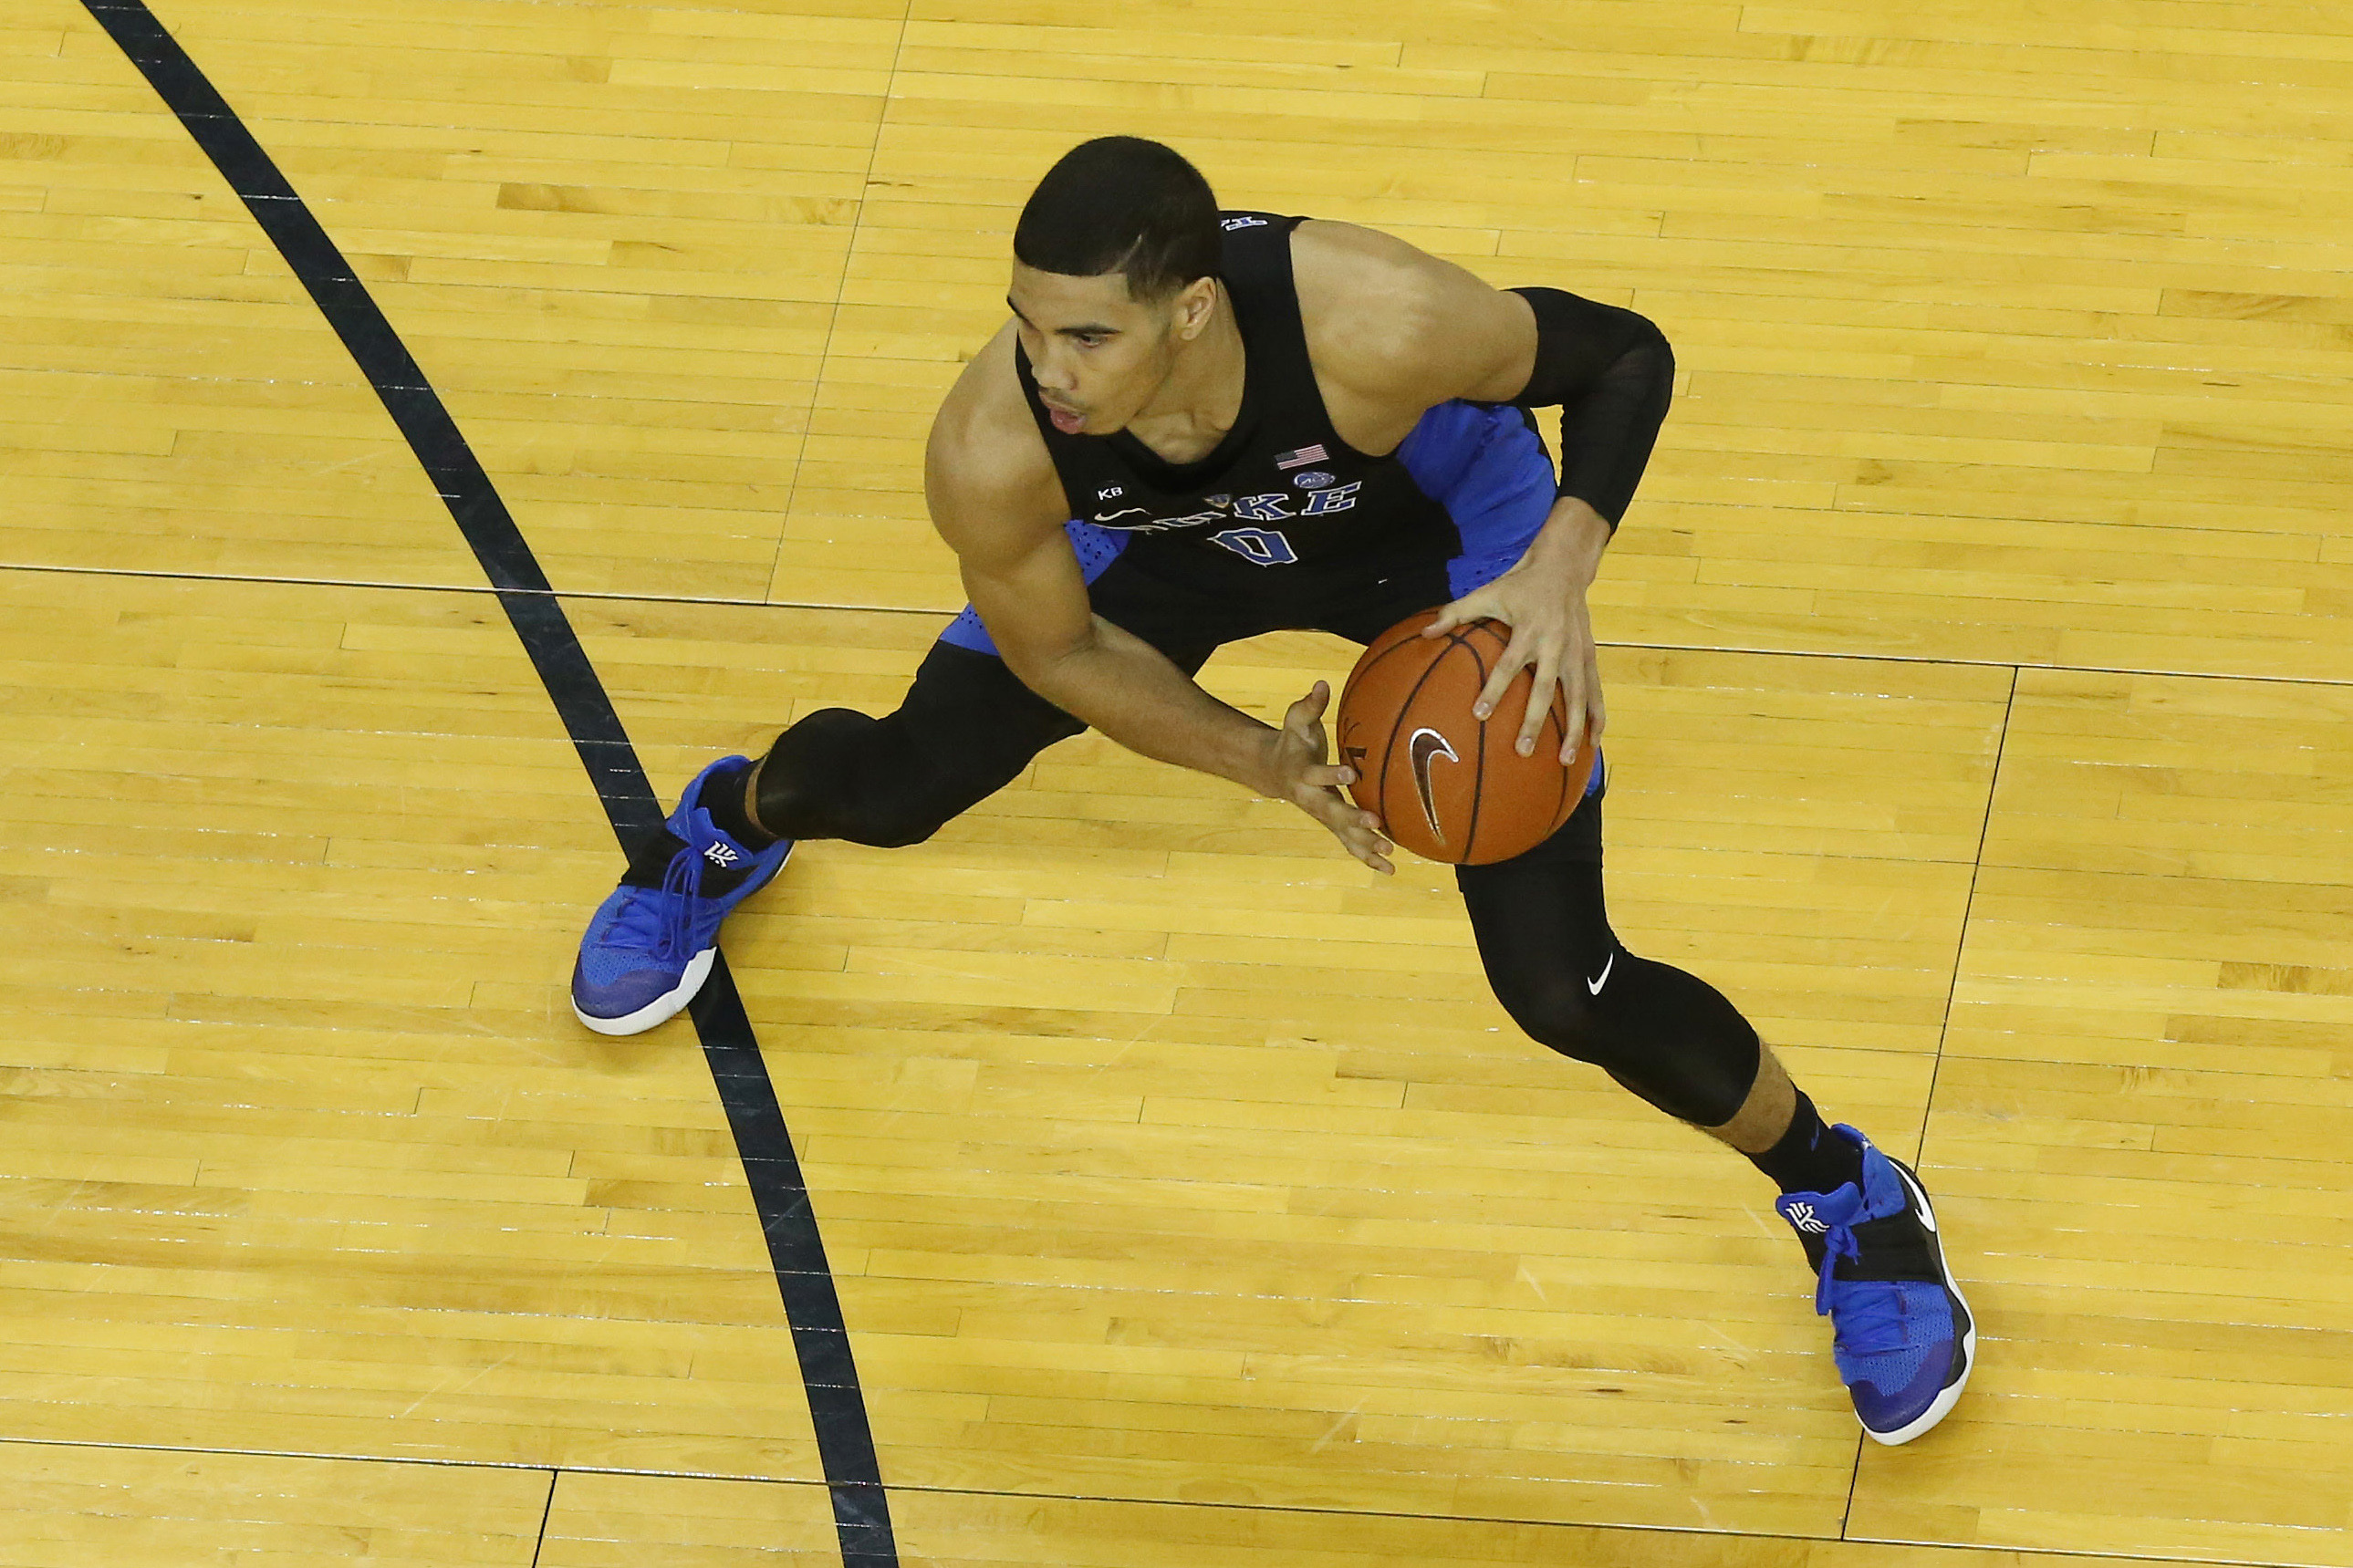 Iowa Wolves Basketball Home Schedule All Basketball